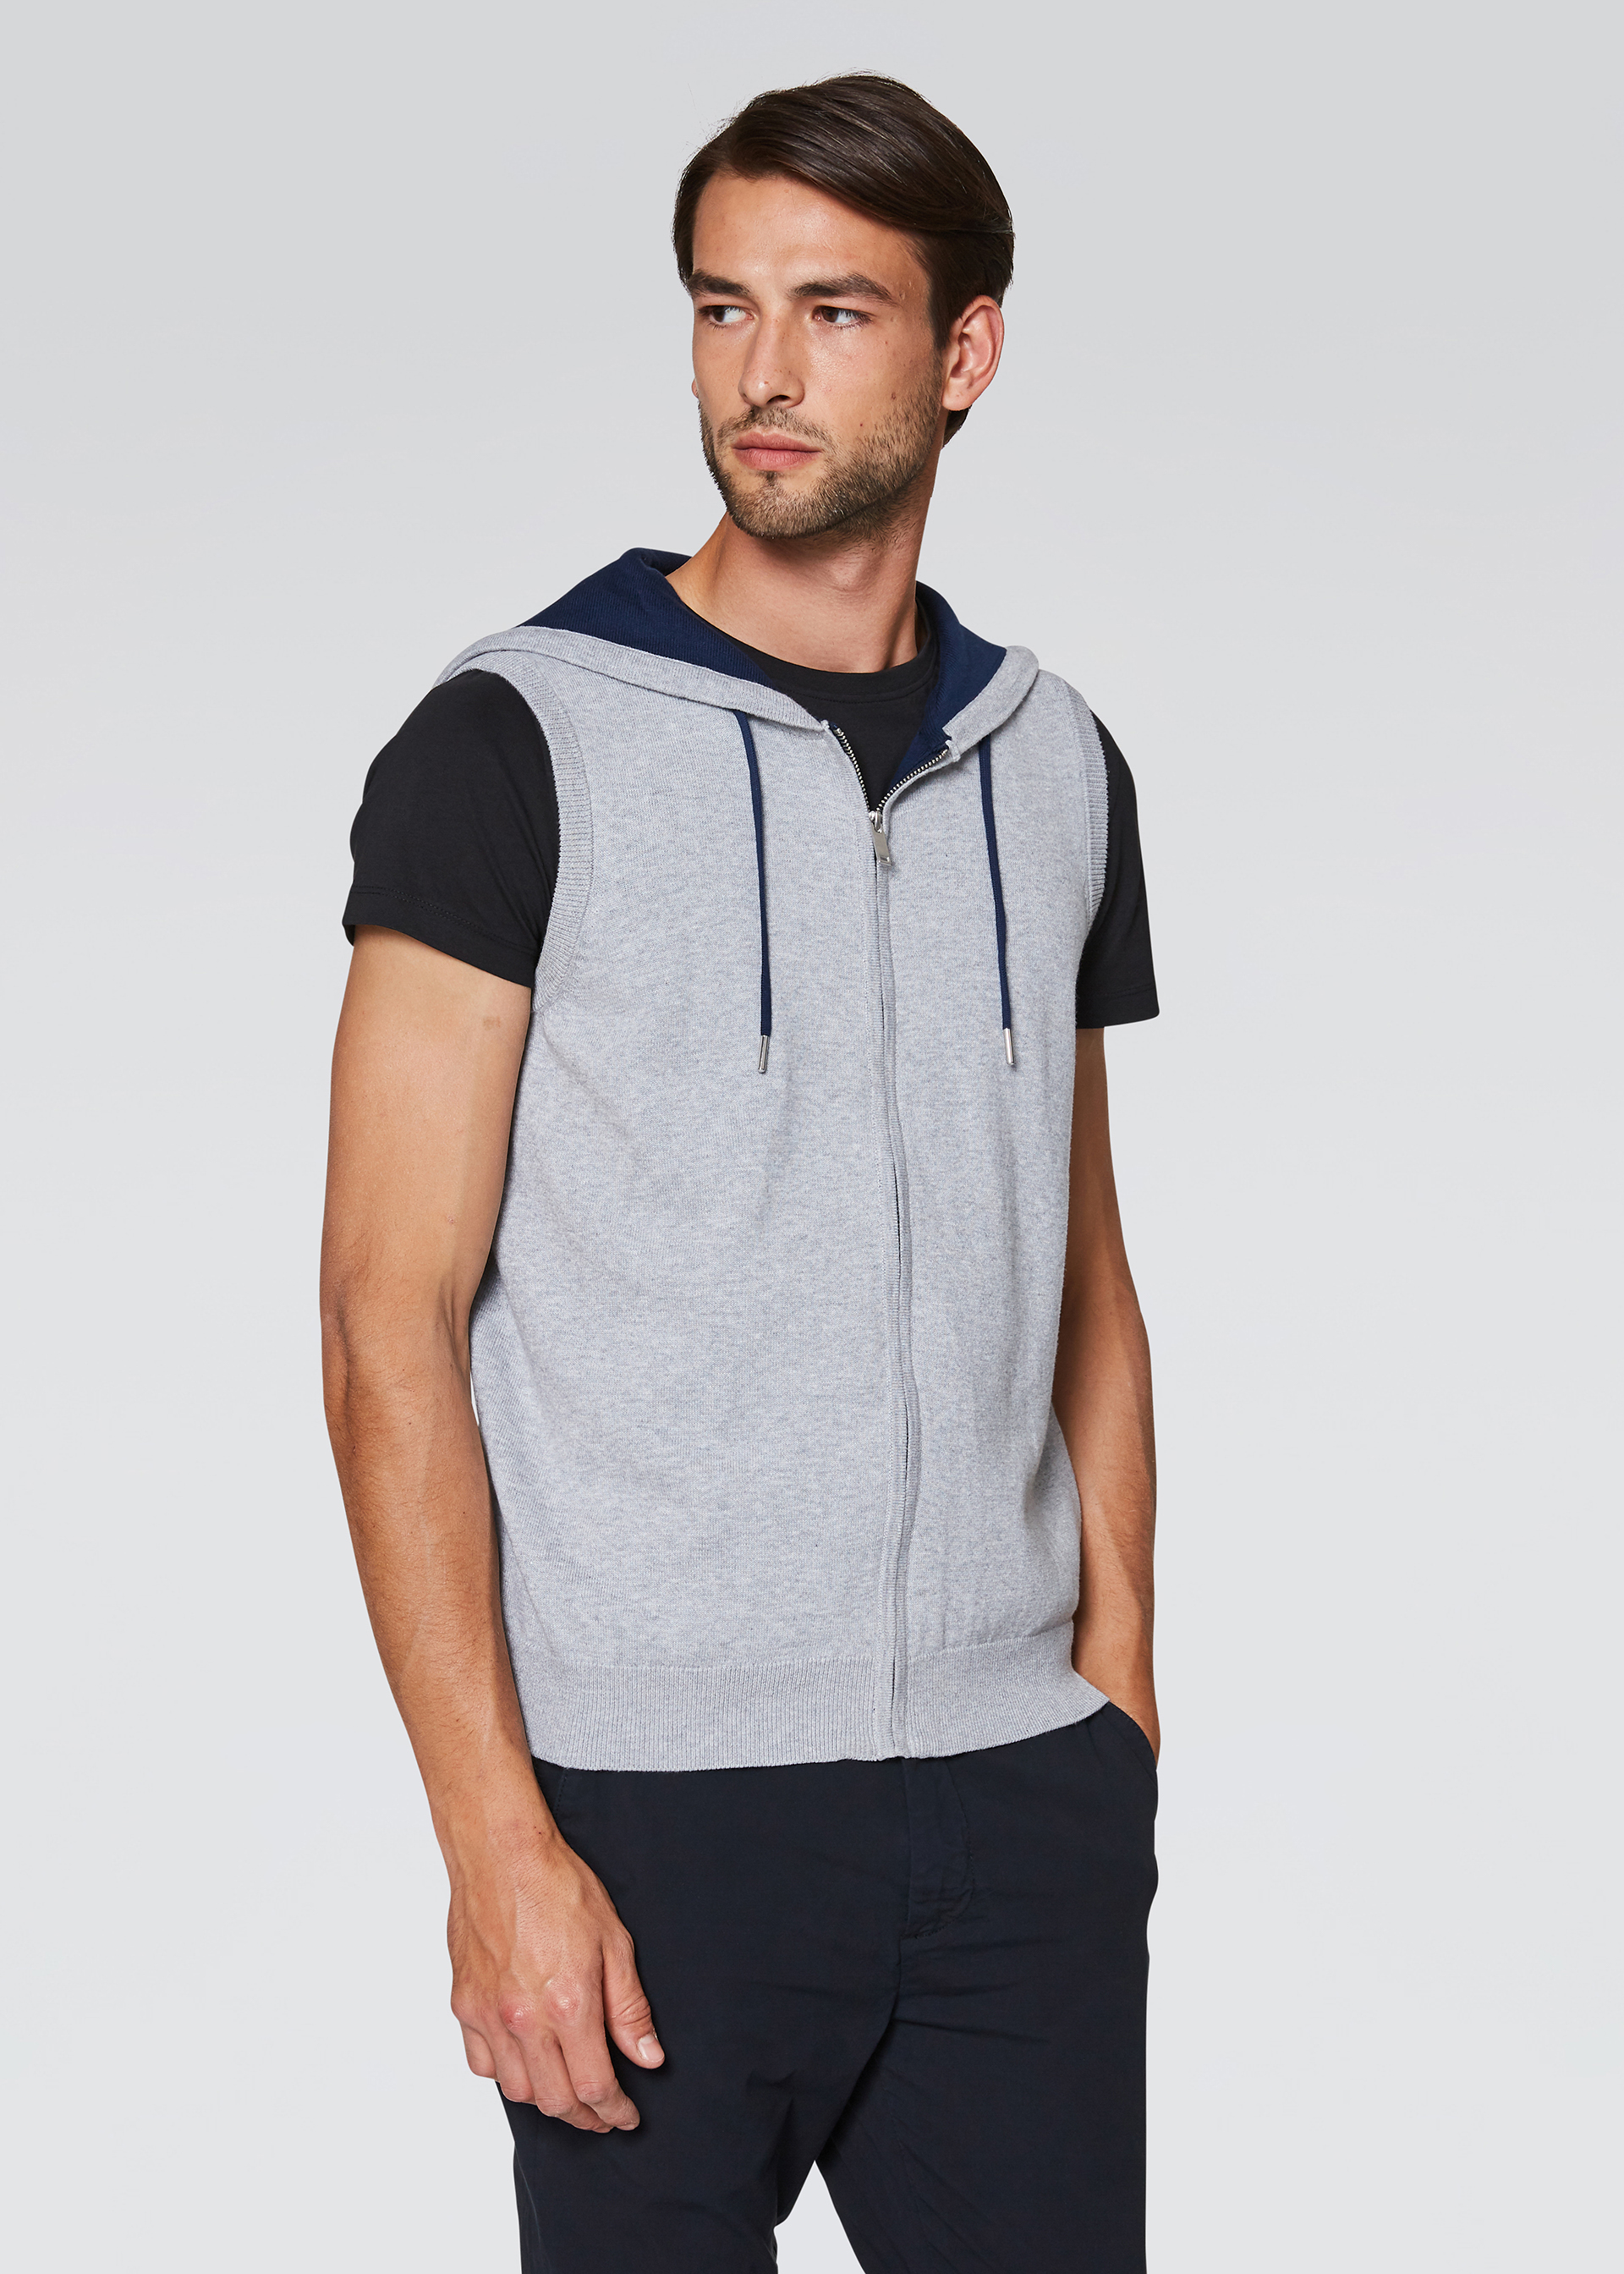 Gilet casual in felpa